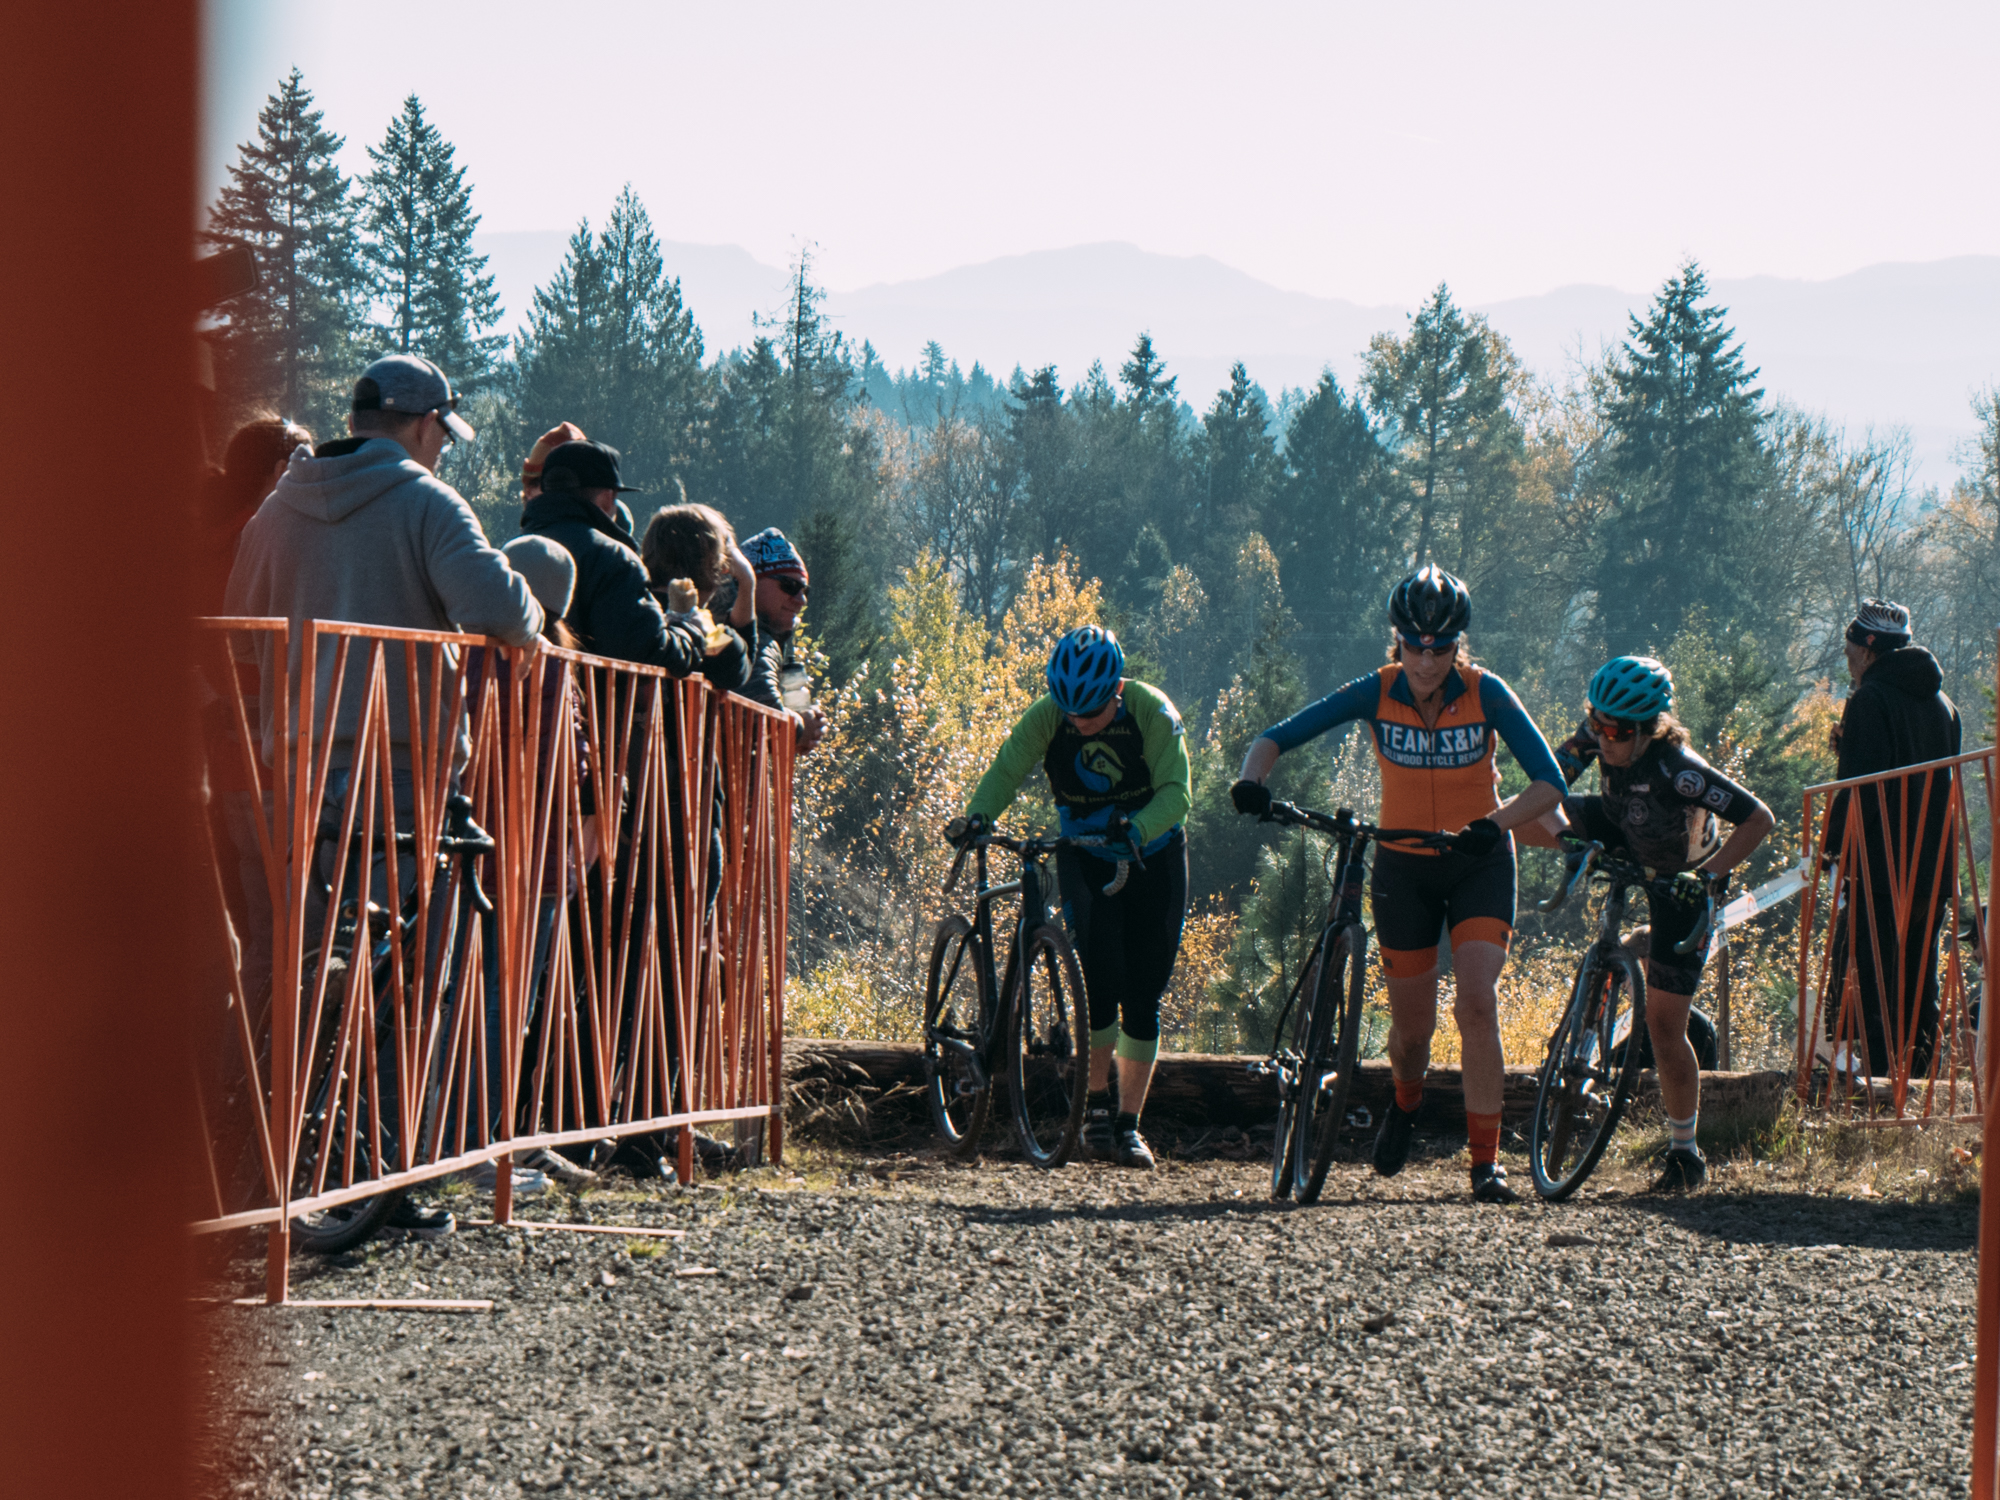 Cyclocross18_CCCX_BartonPark-mettlecycling111.jpg